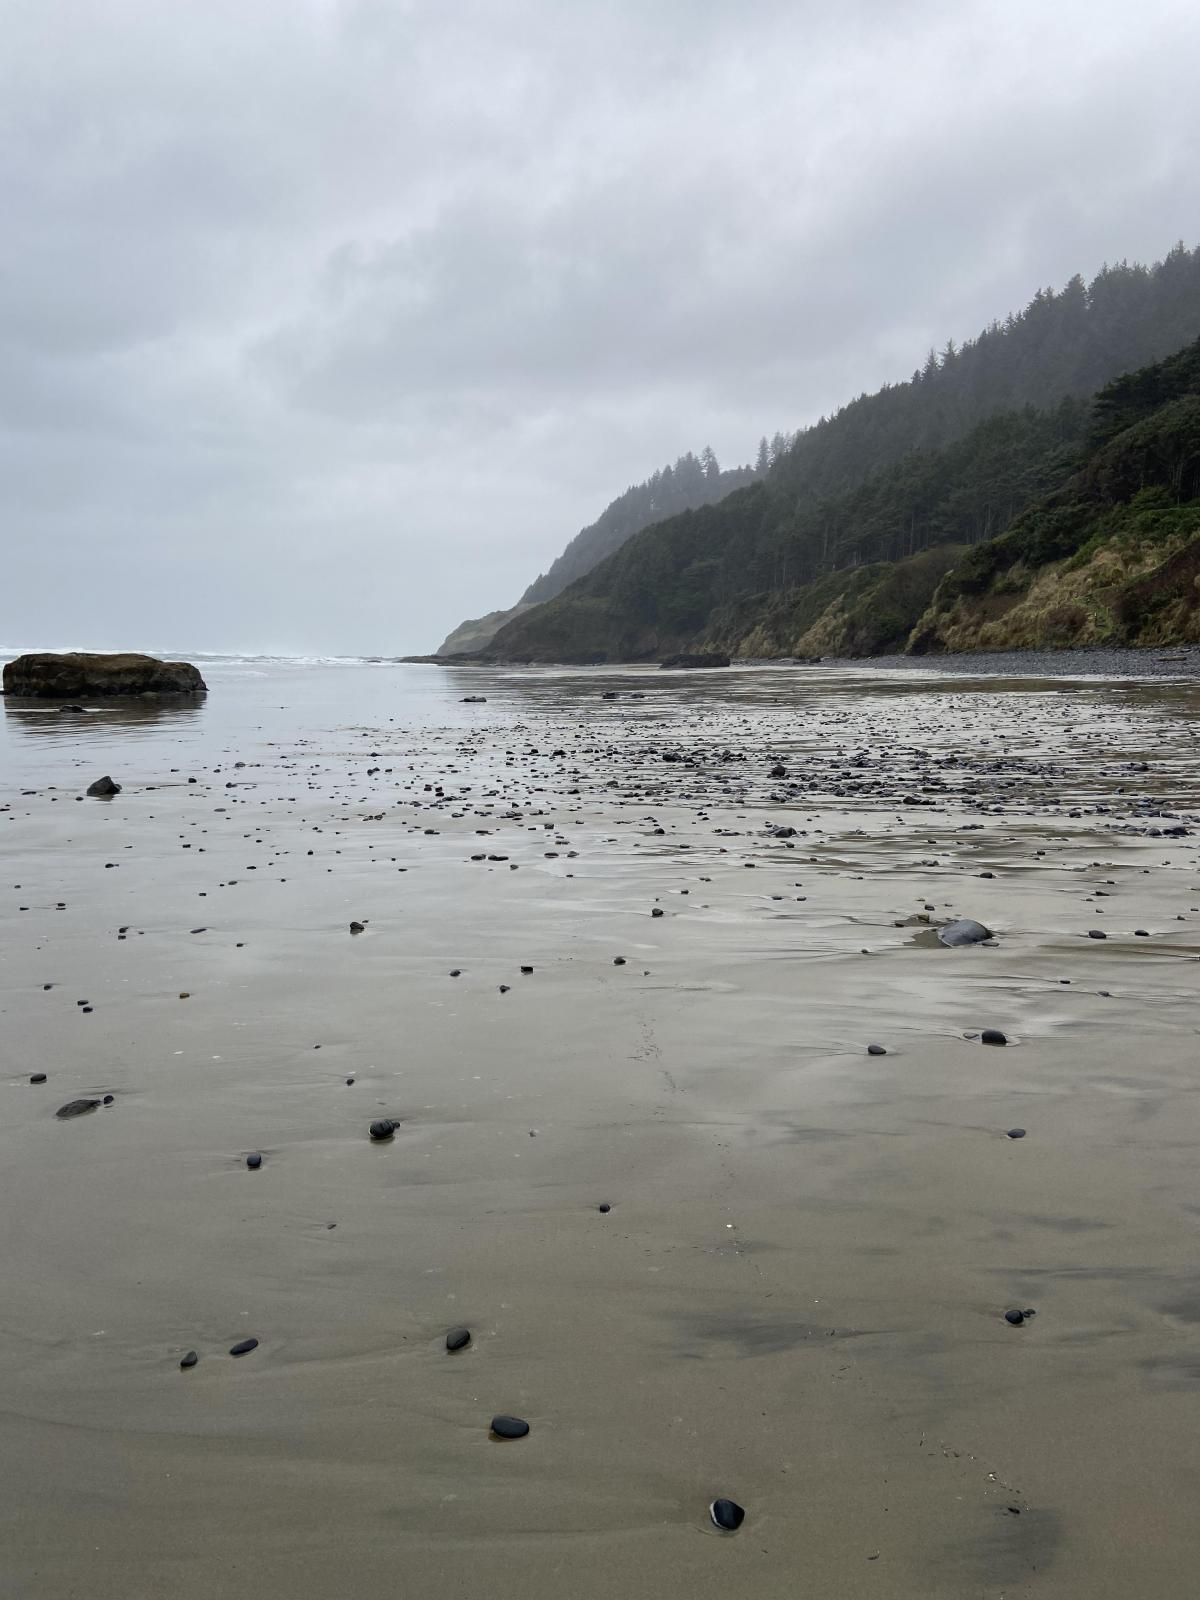 Rock fields observed on north end of beach